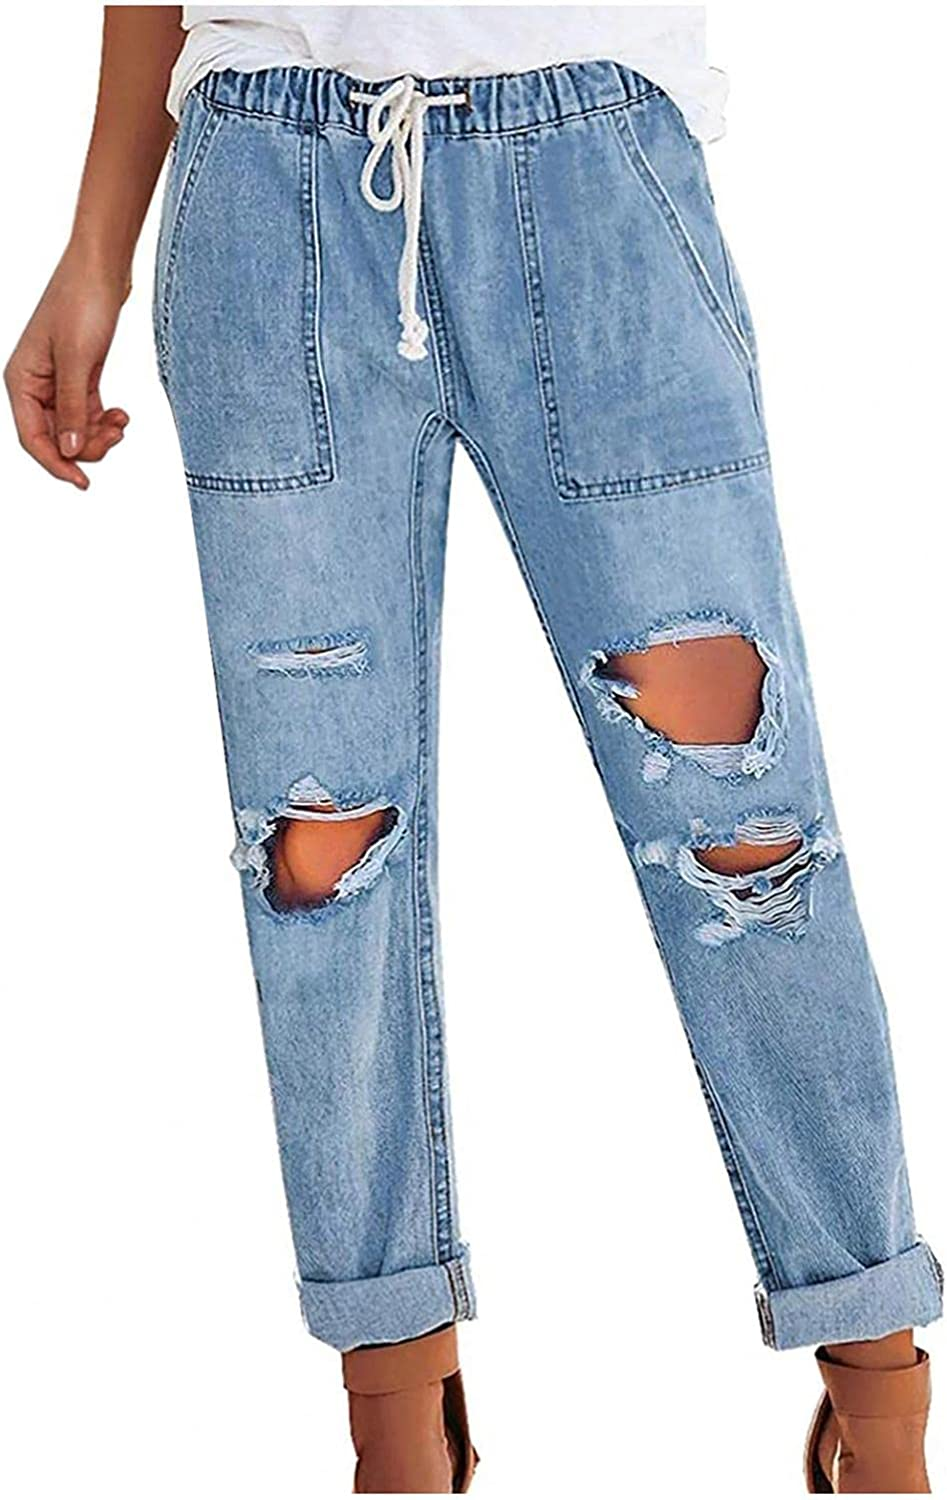 MASZONE Y2K Fashion Skinny Jeans for Women Slim Fit Stretch Ripped Jeans High Waisted Denim Pants Vintage Streetwear